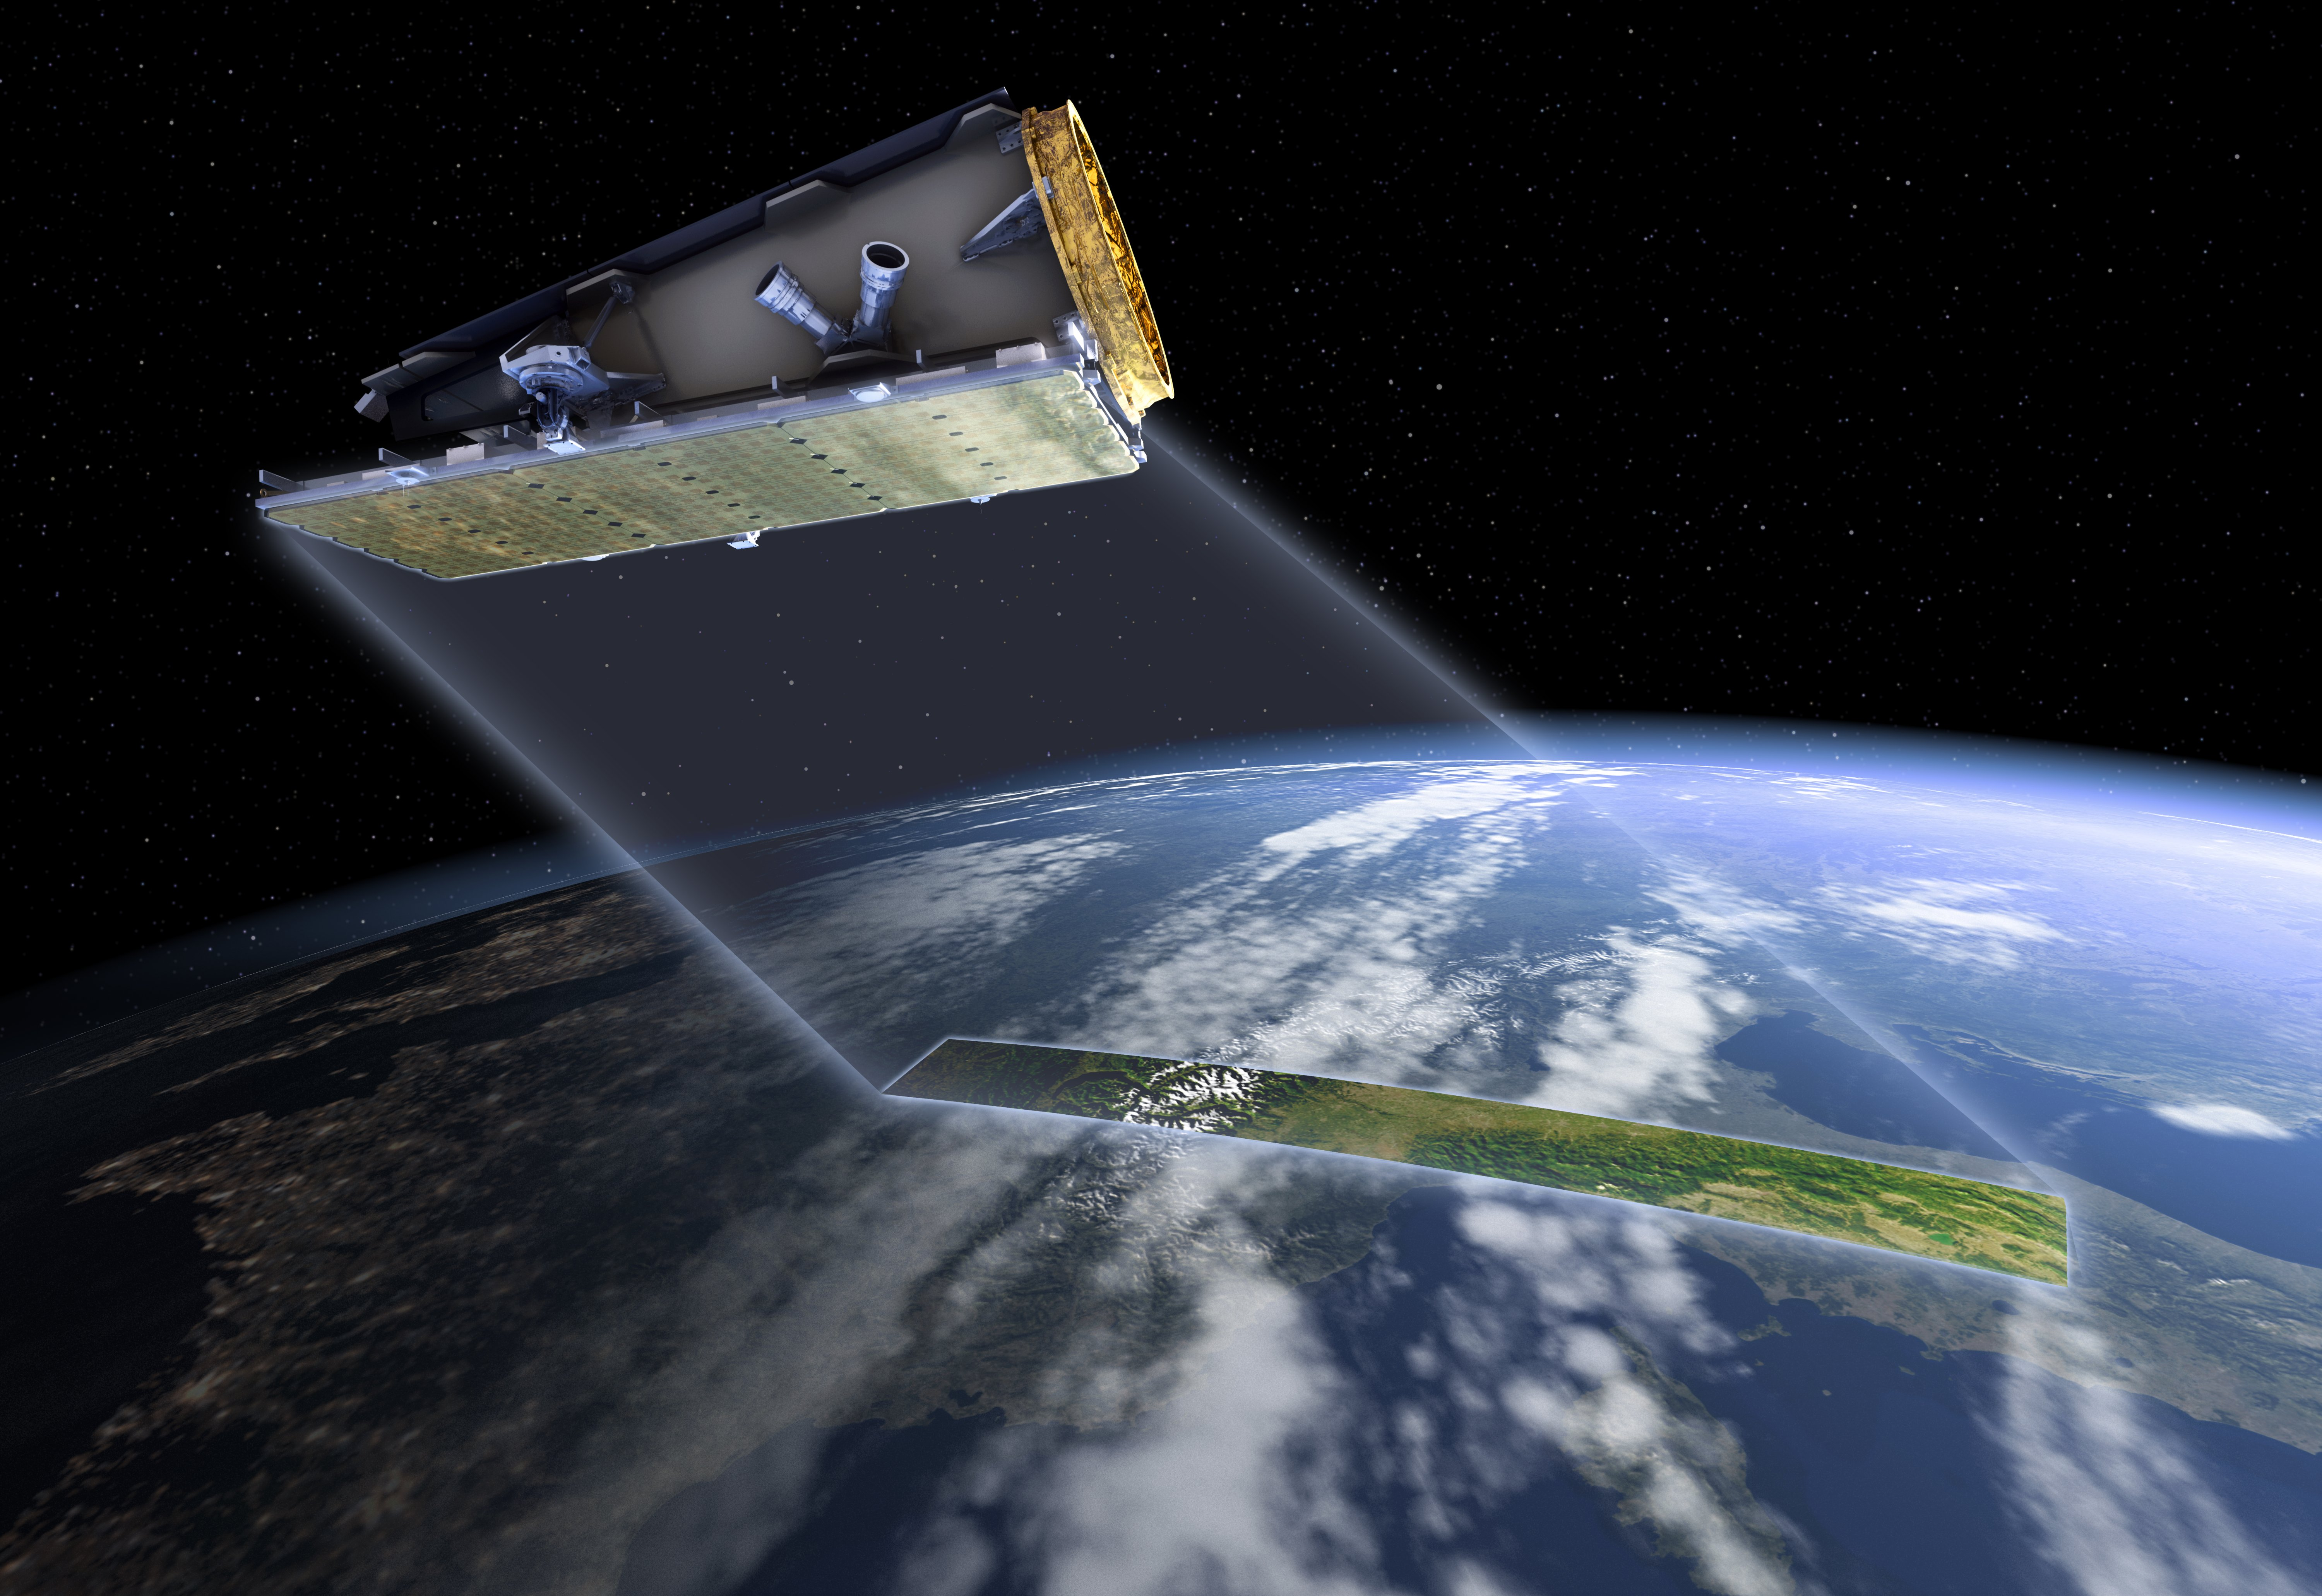 Artists impression of NovaSAR satellite scanning earth from space.